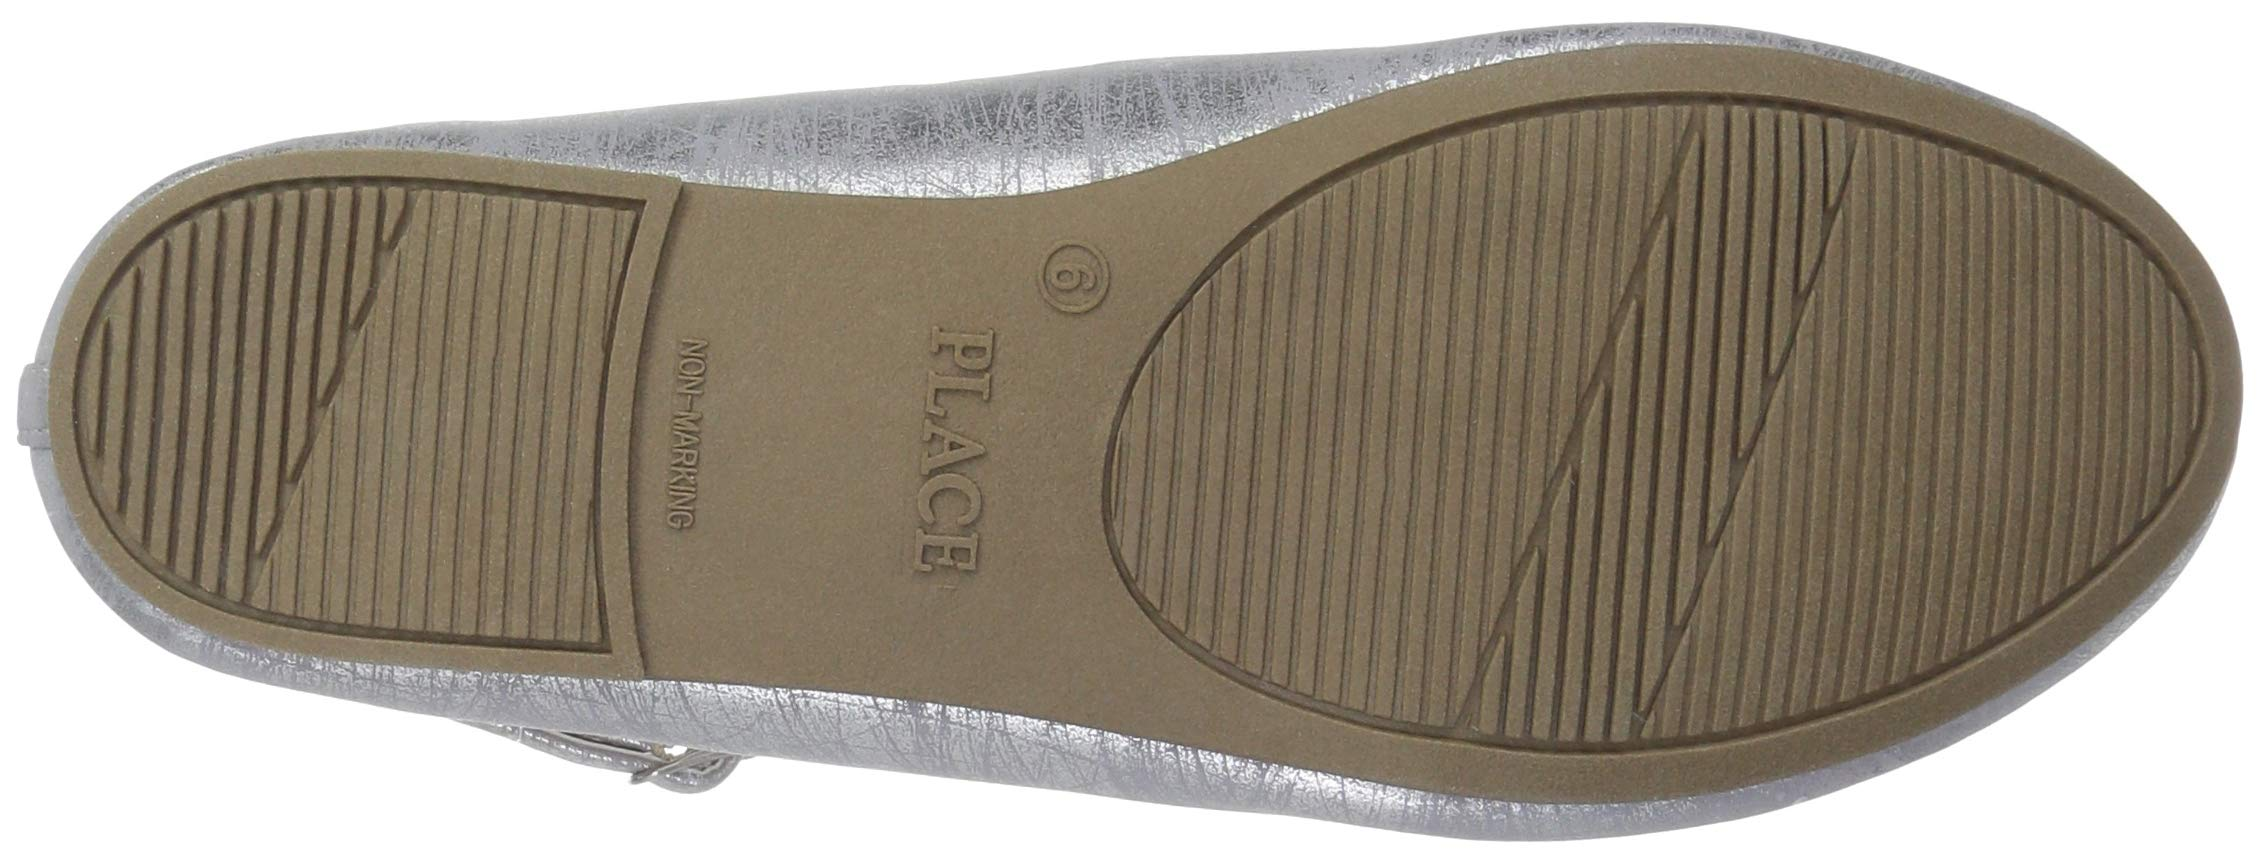 The Children's Place Girls' T-Strap Ballet Flats, Light Lavender, Youth 3 Child US Little Kid by The Children's Place (Image #3)